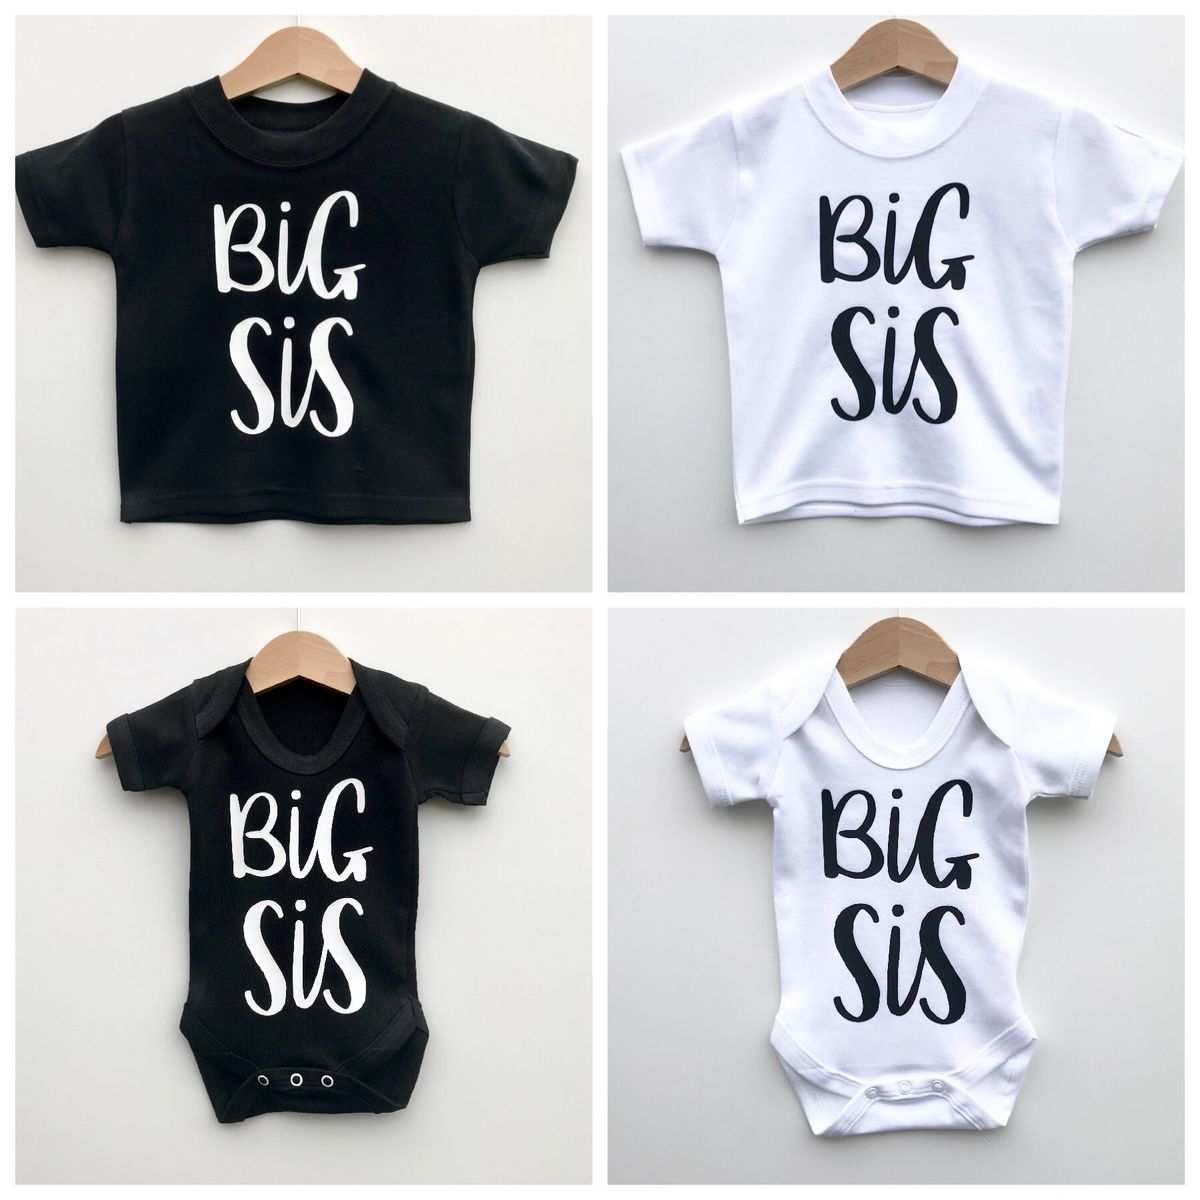 Big Sis Sibling T-Shirt or Bodysuit (various sizes) - product images  of